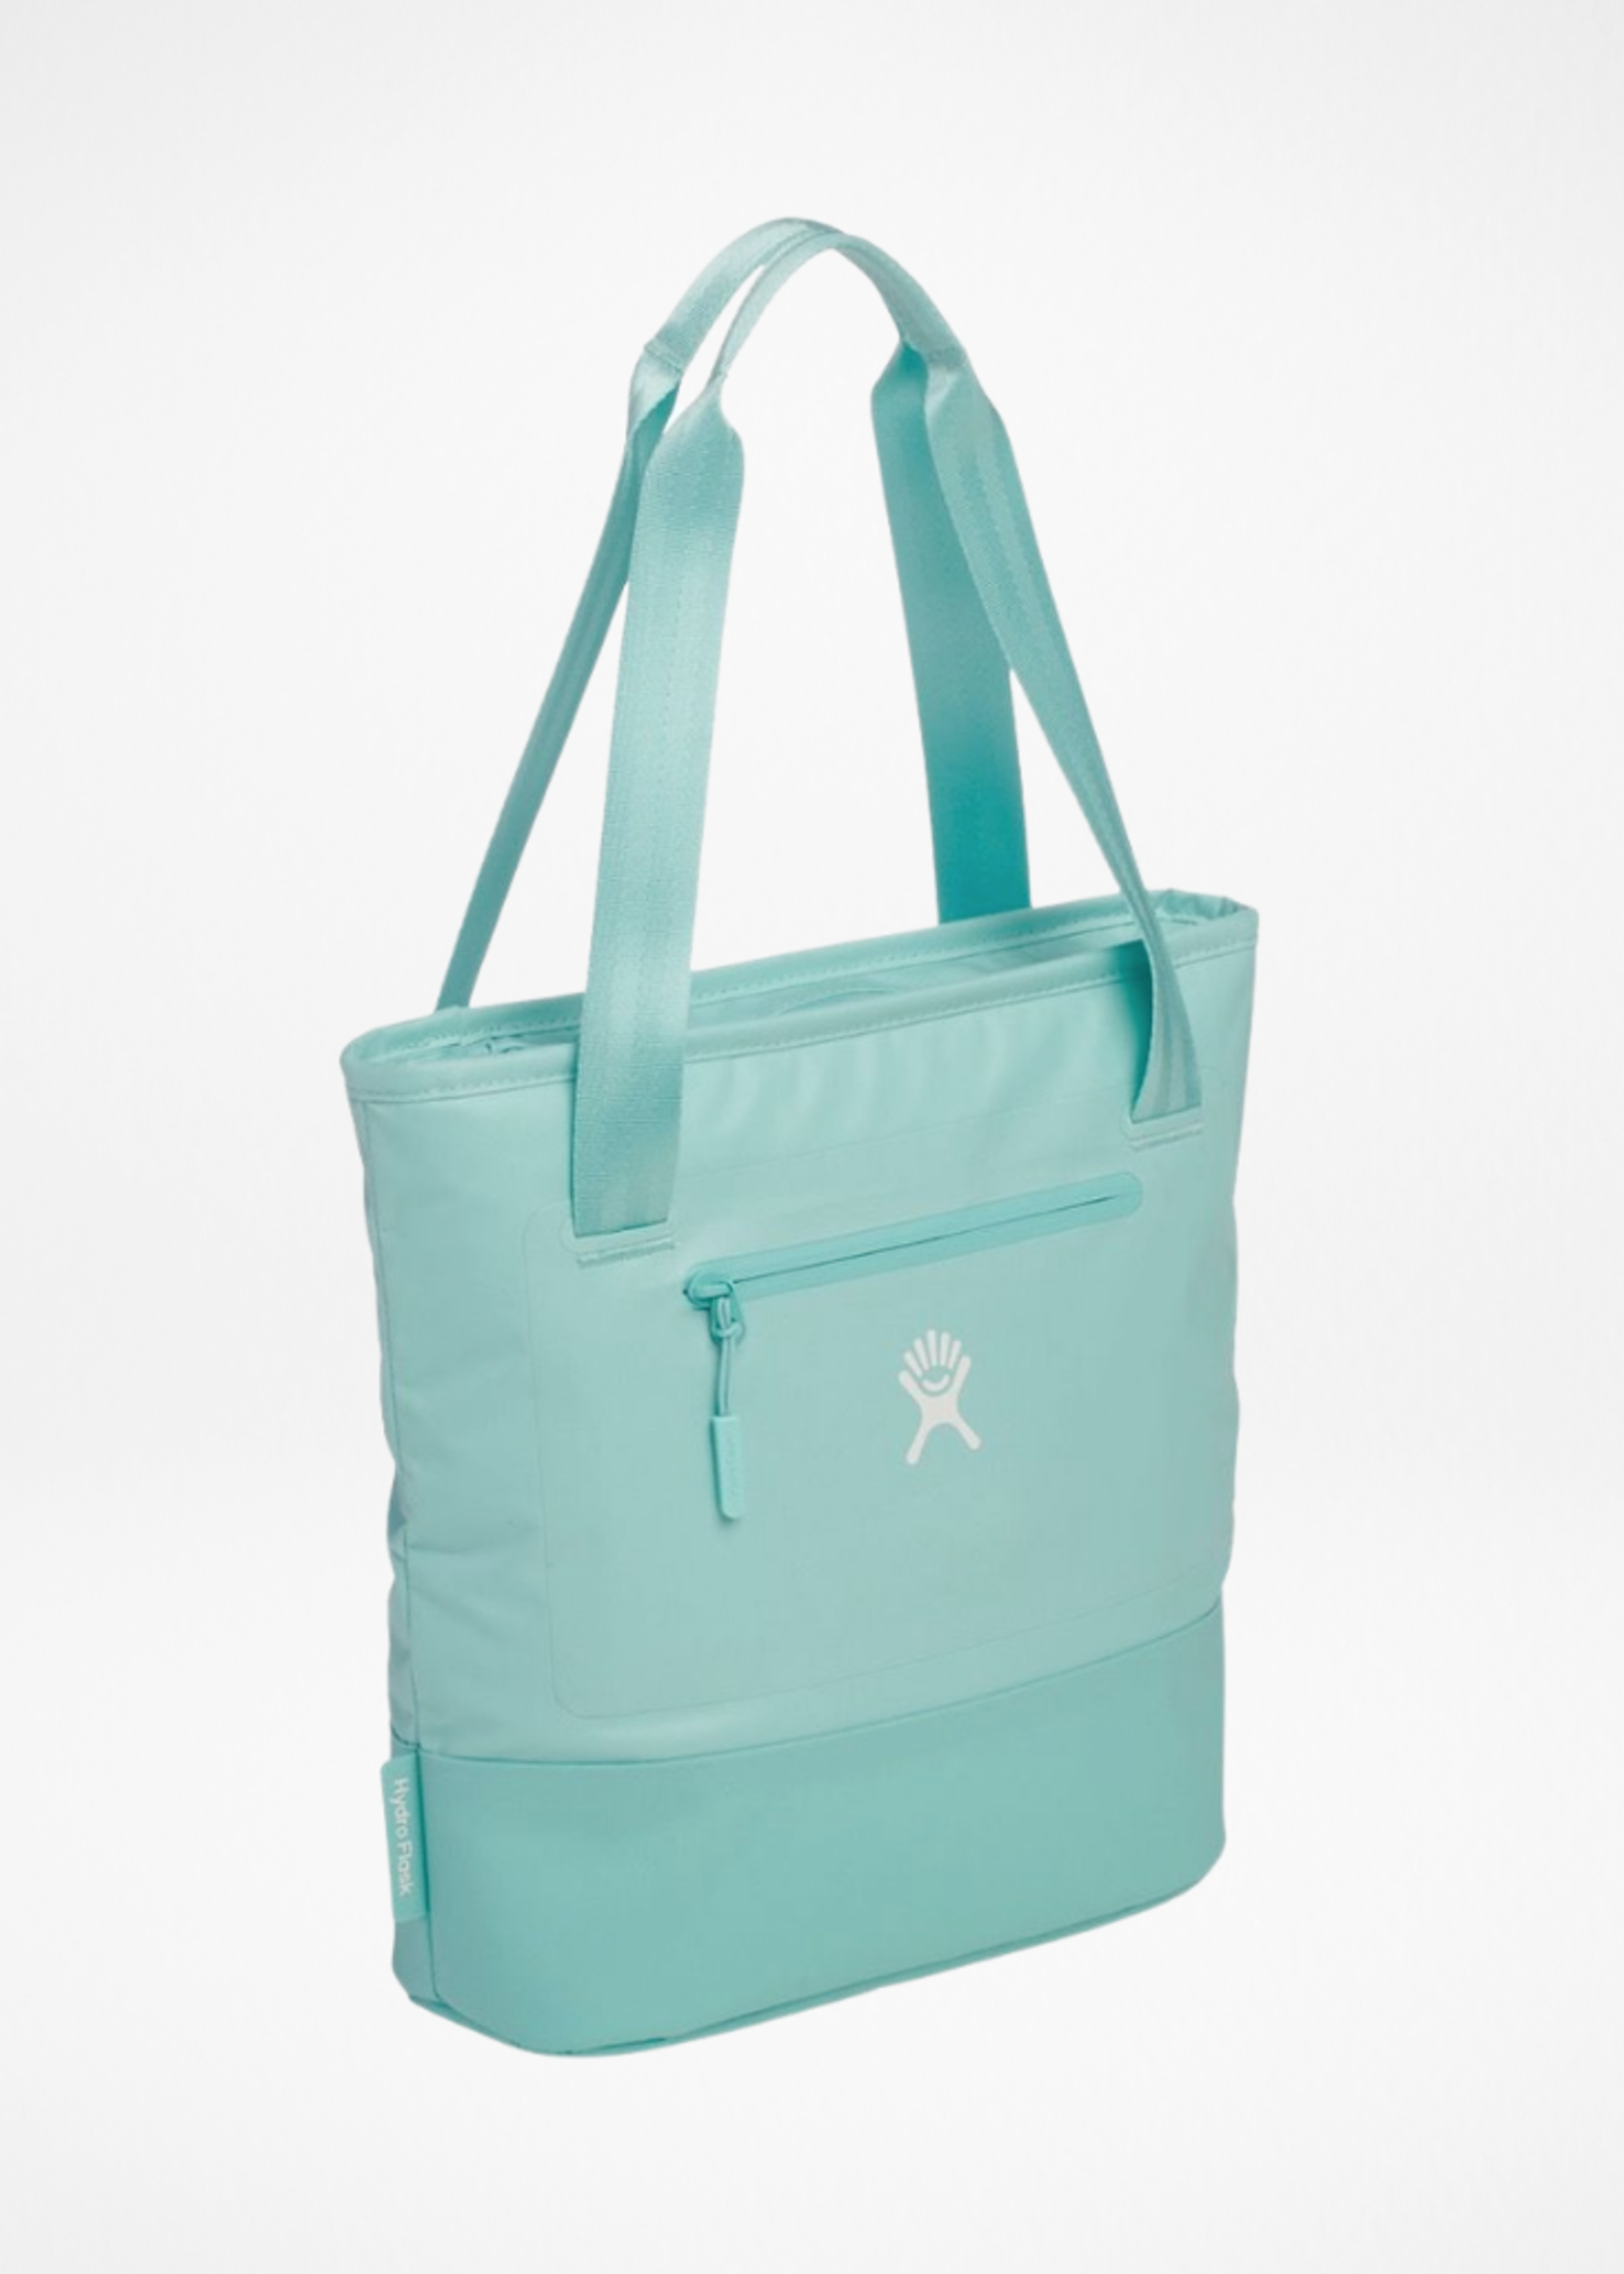 HYDRO FLASK 21 HYDRO FLASK 8L LUNCH TOTE